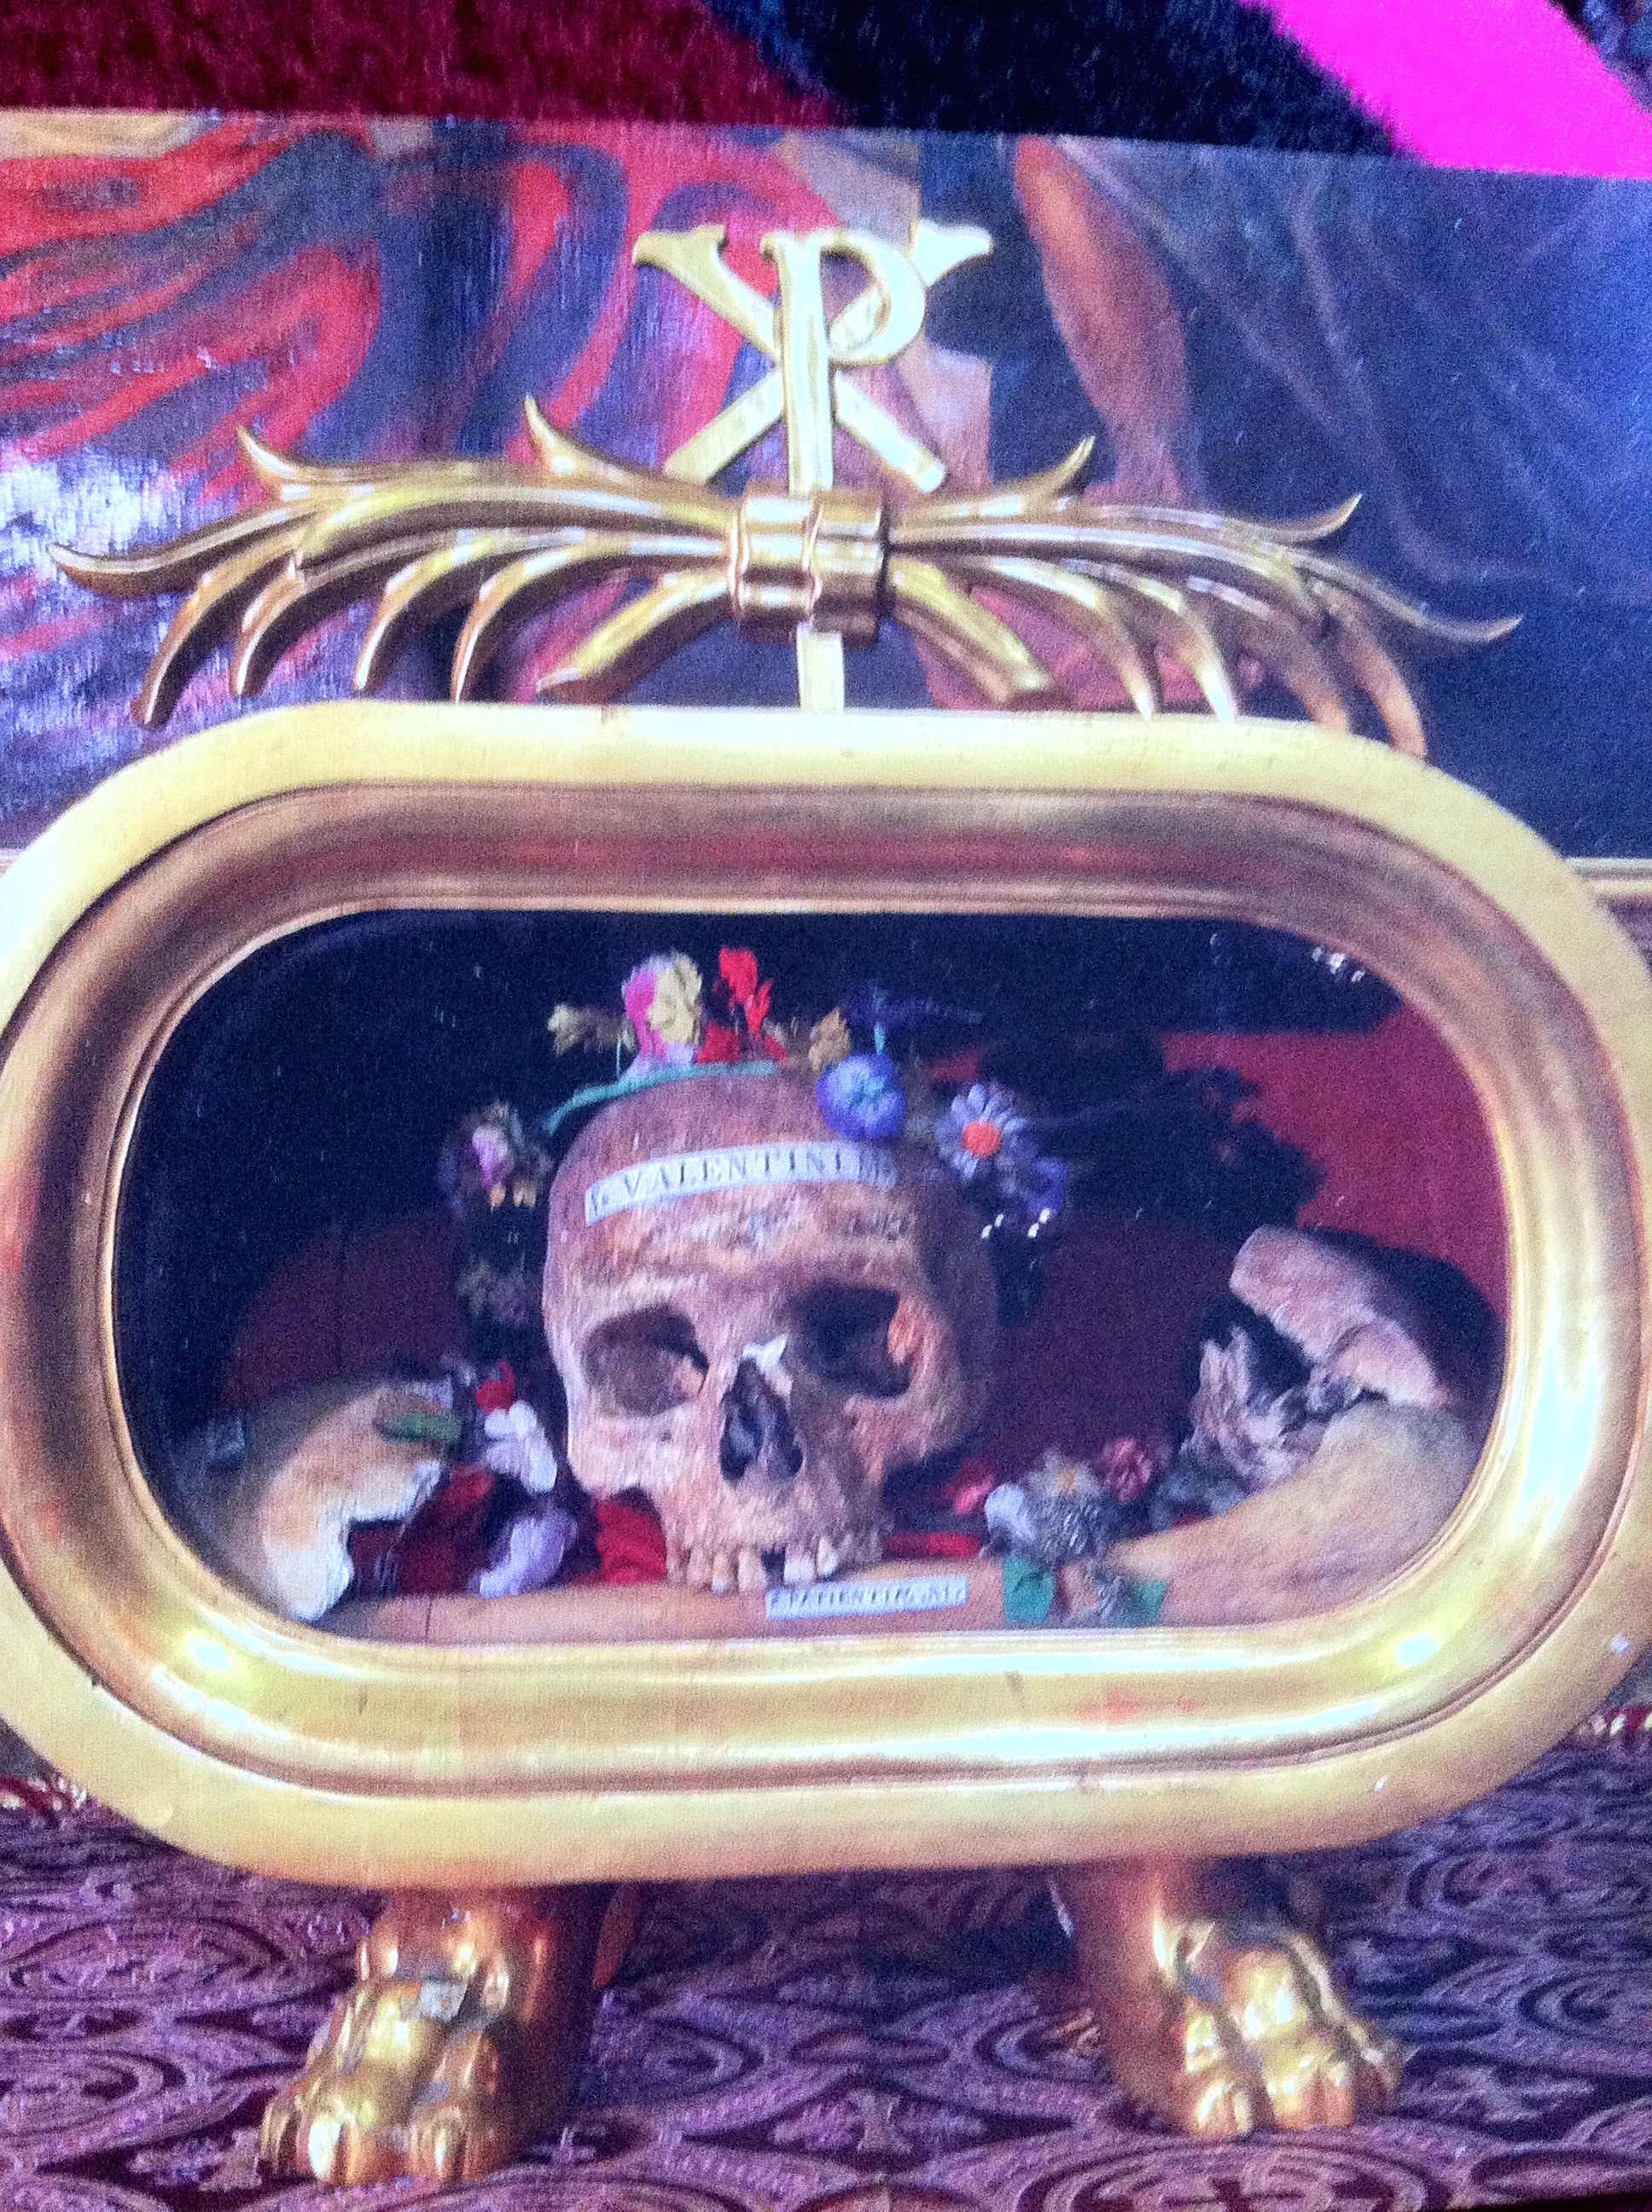 The skull and other relics of St. Valentine, a priest martyred in Rome during the early centuries of Christianity, now kept on a side altar in the Basilica of Santa Maria in Cosmedin in Rome.